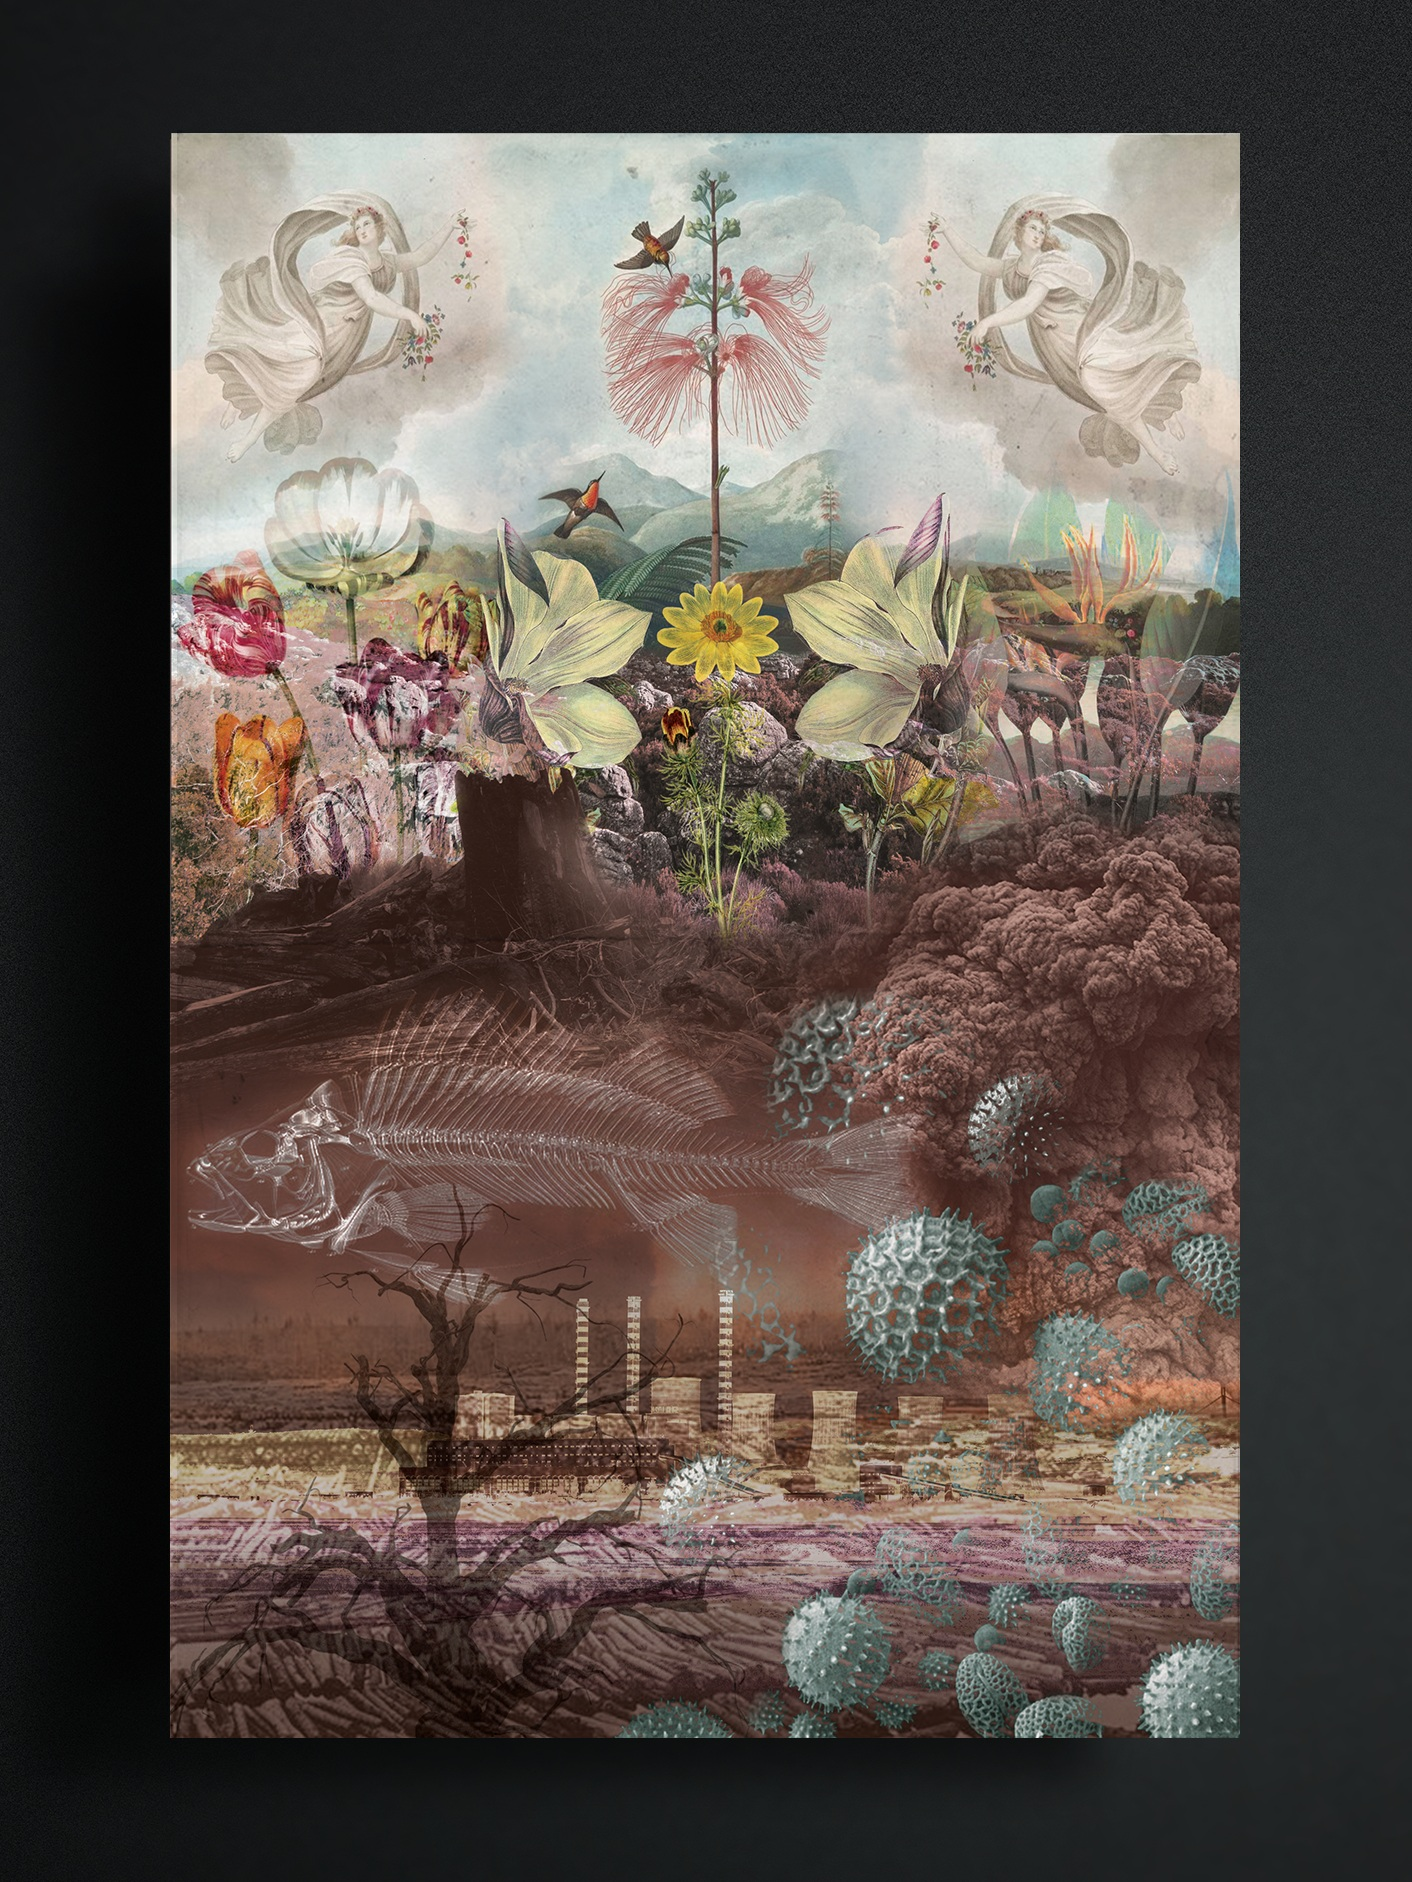 Changes of Scenery - Changes of Scenery is a book that explores four worldviews of the natural world: nature is connected, nature is benign & perverse, nature is capricious, and the romanticization of nature. The book represents each perception both logically and expressively by using diagrams and landscape collages.